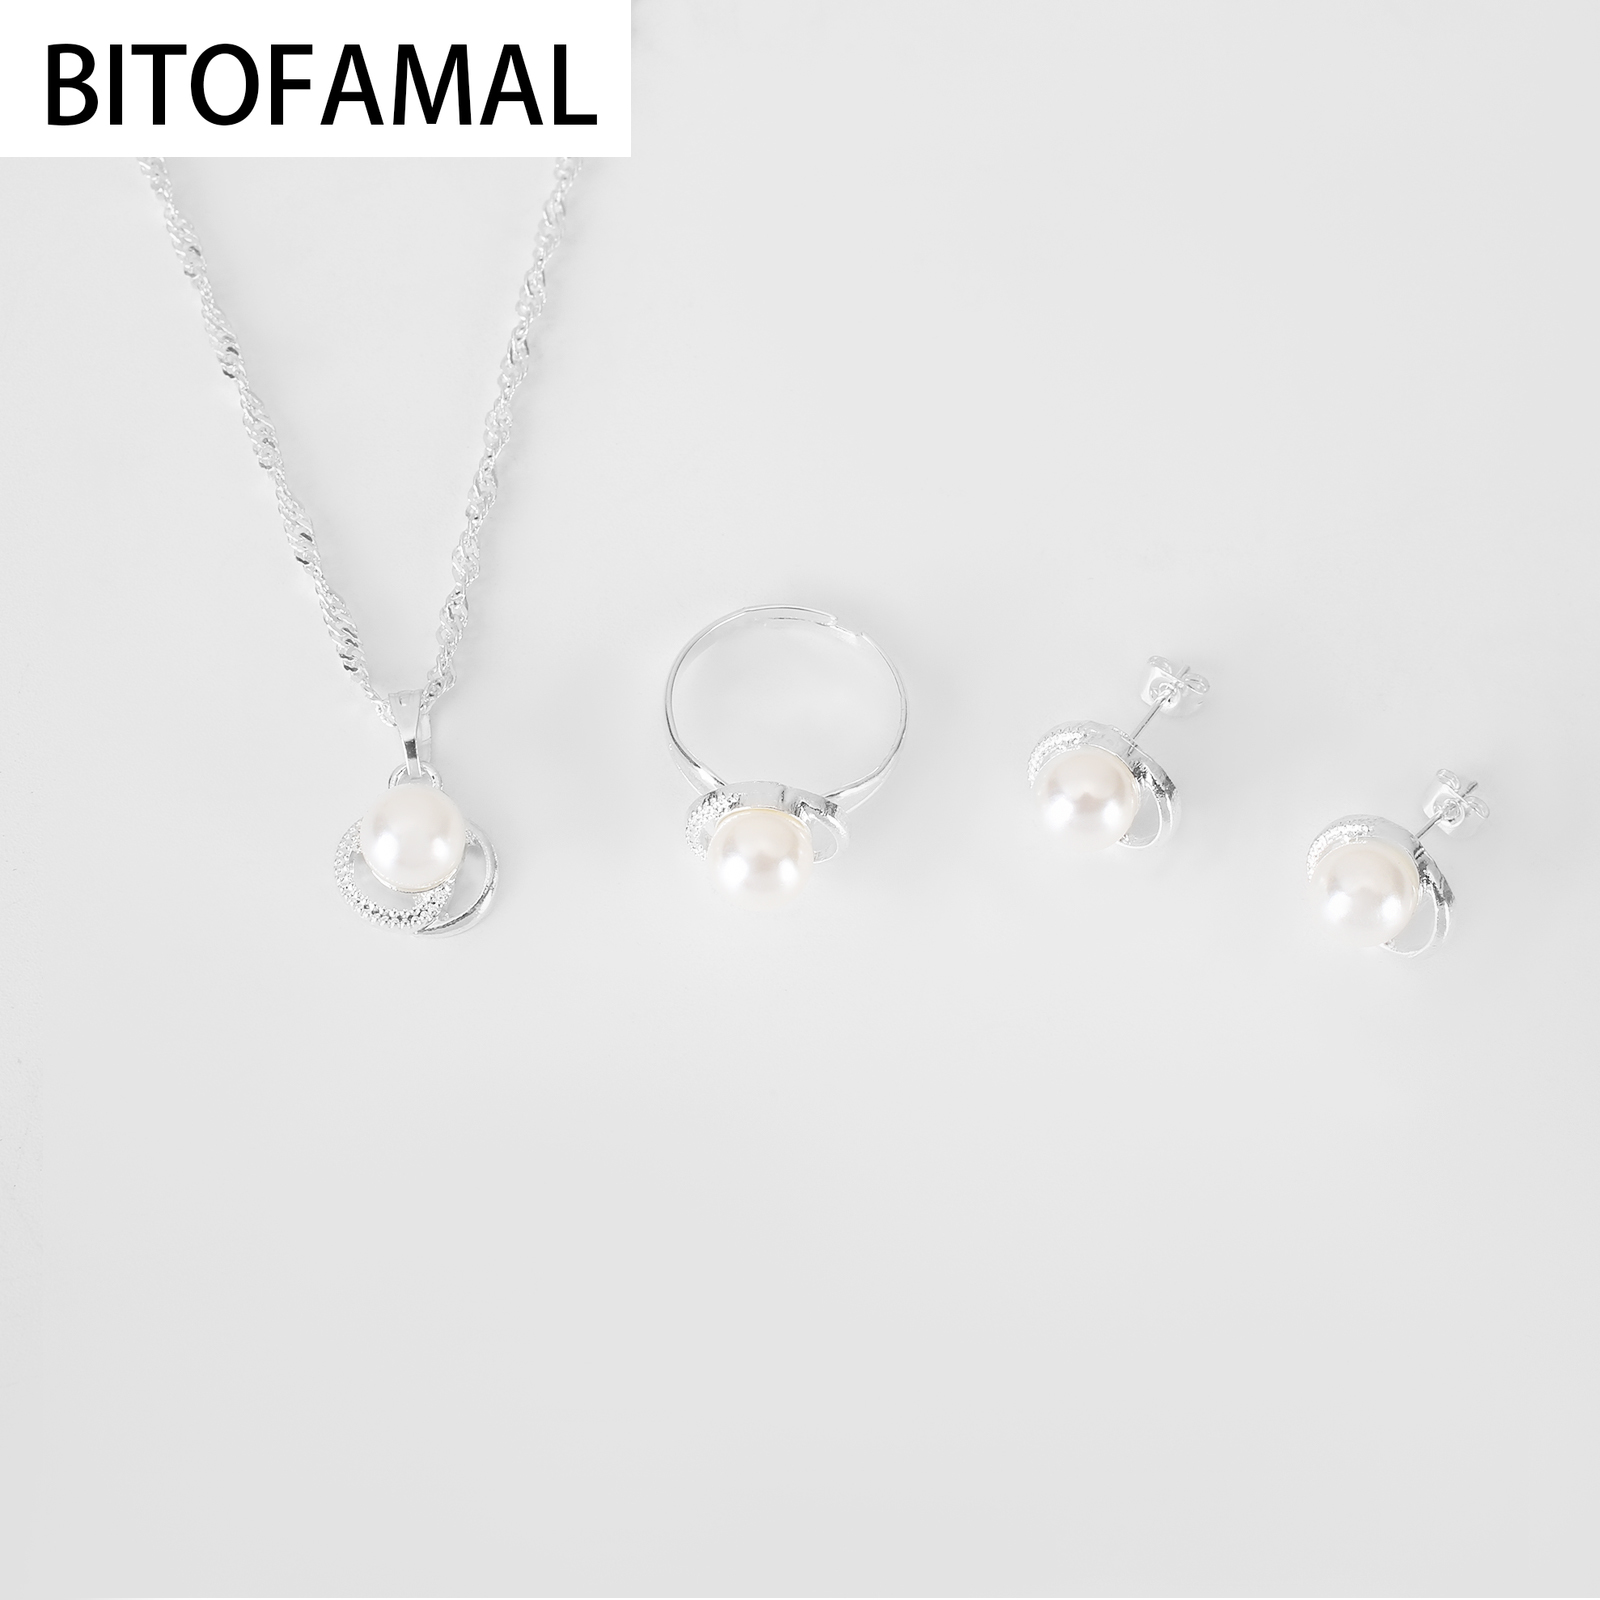 1 Set 3in1 Imitation Pearl Alloy Set Color white Earrings Necklace Ring for Women Girls  Trendy Cute Elegant Gifts for Party 5